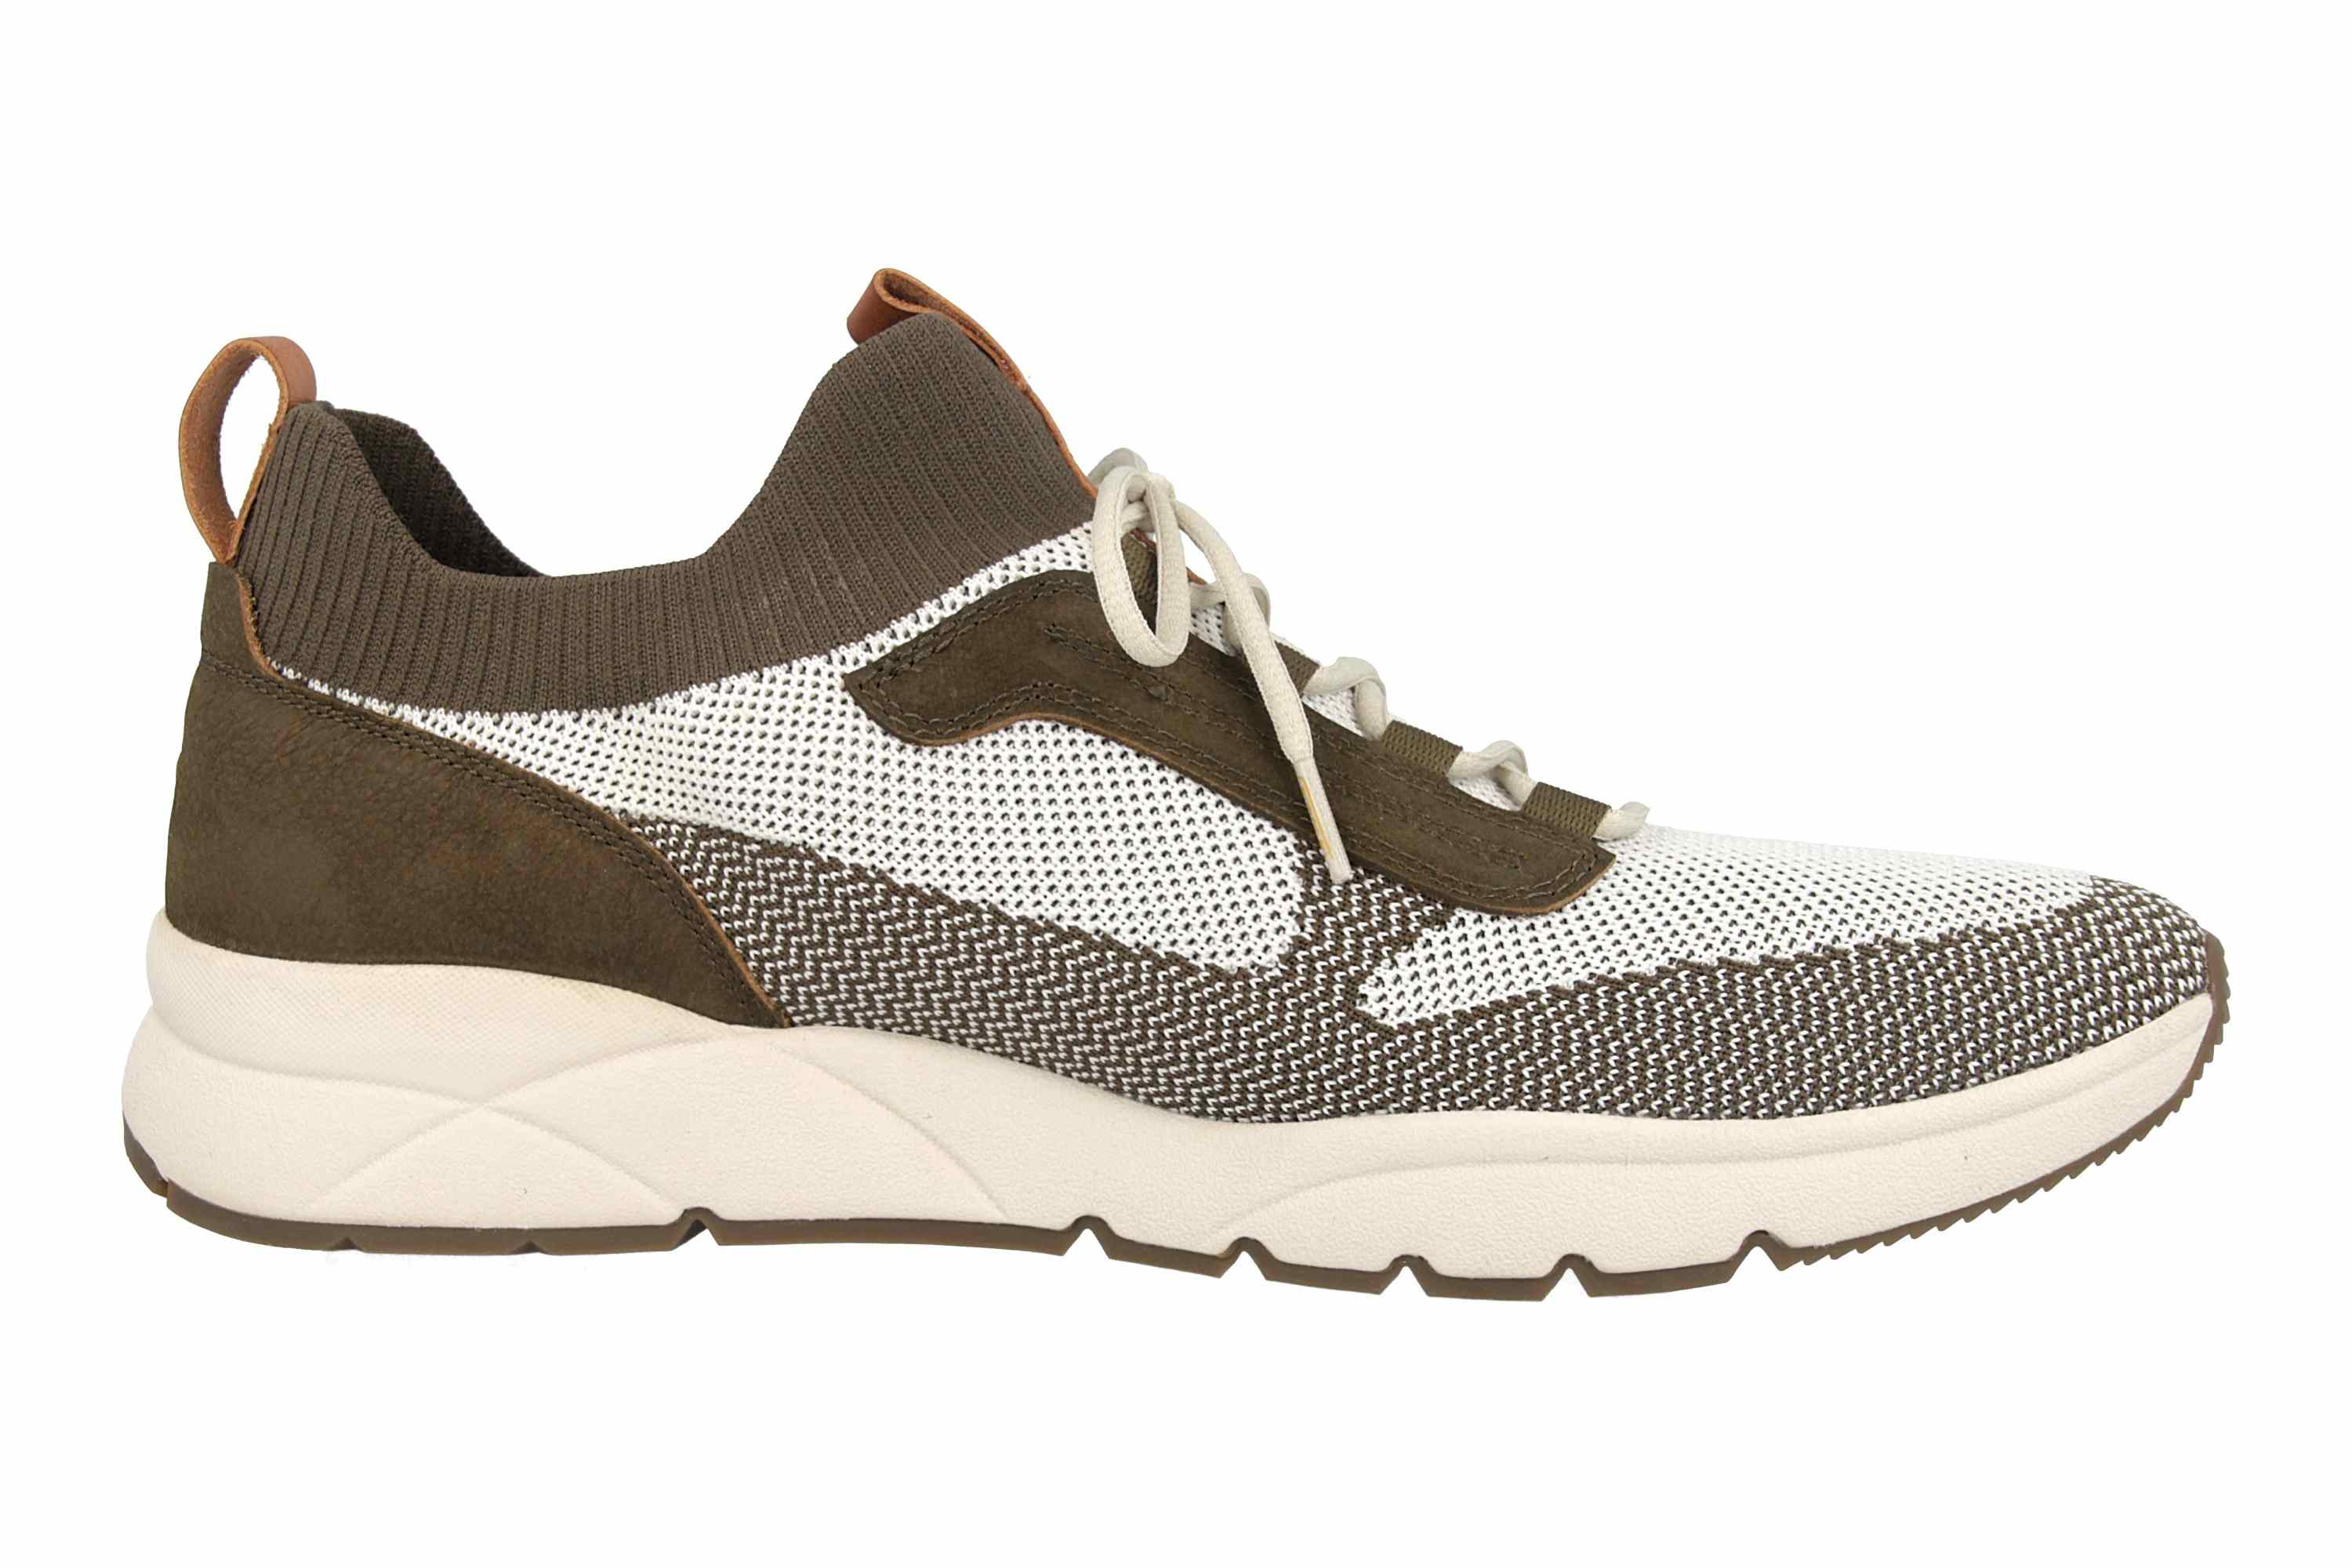 Camel Active Run 12 off whiteolive |